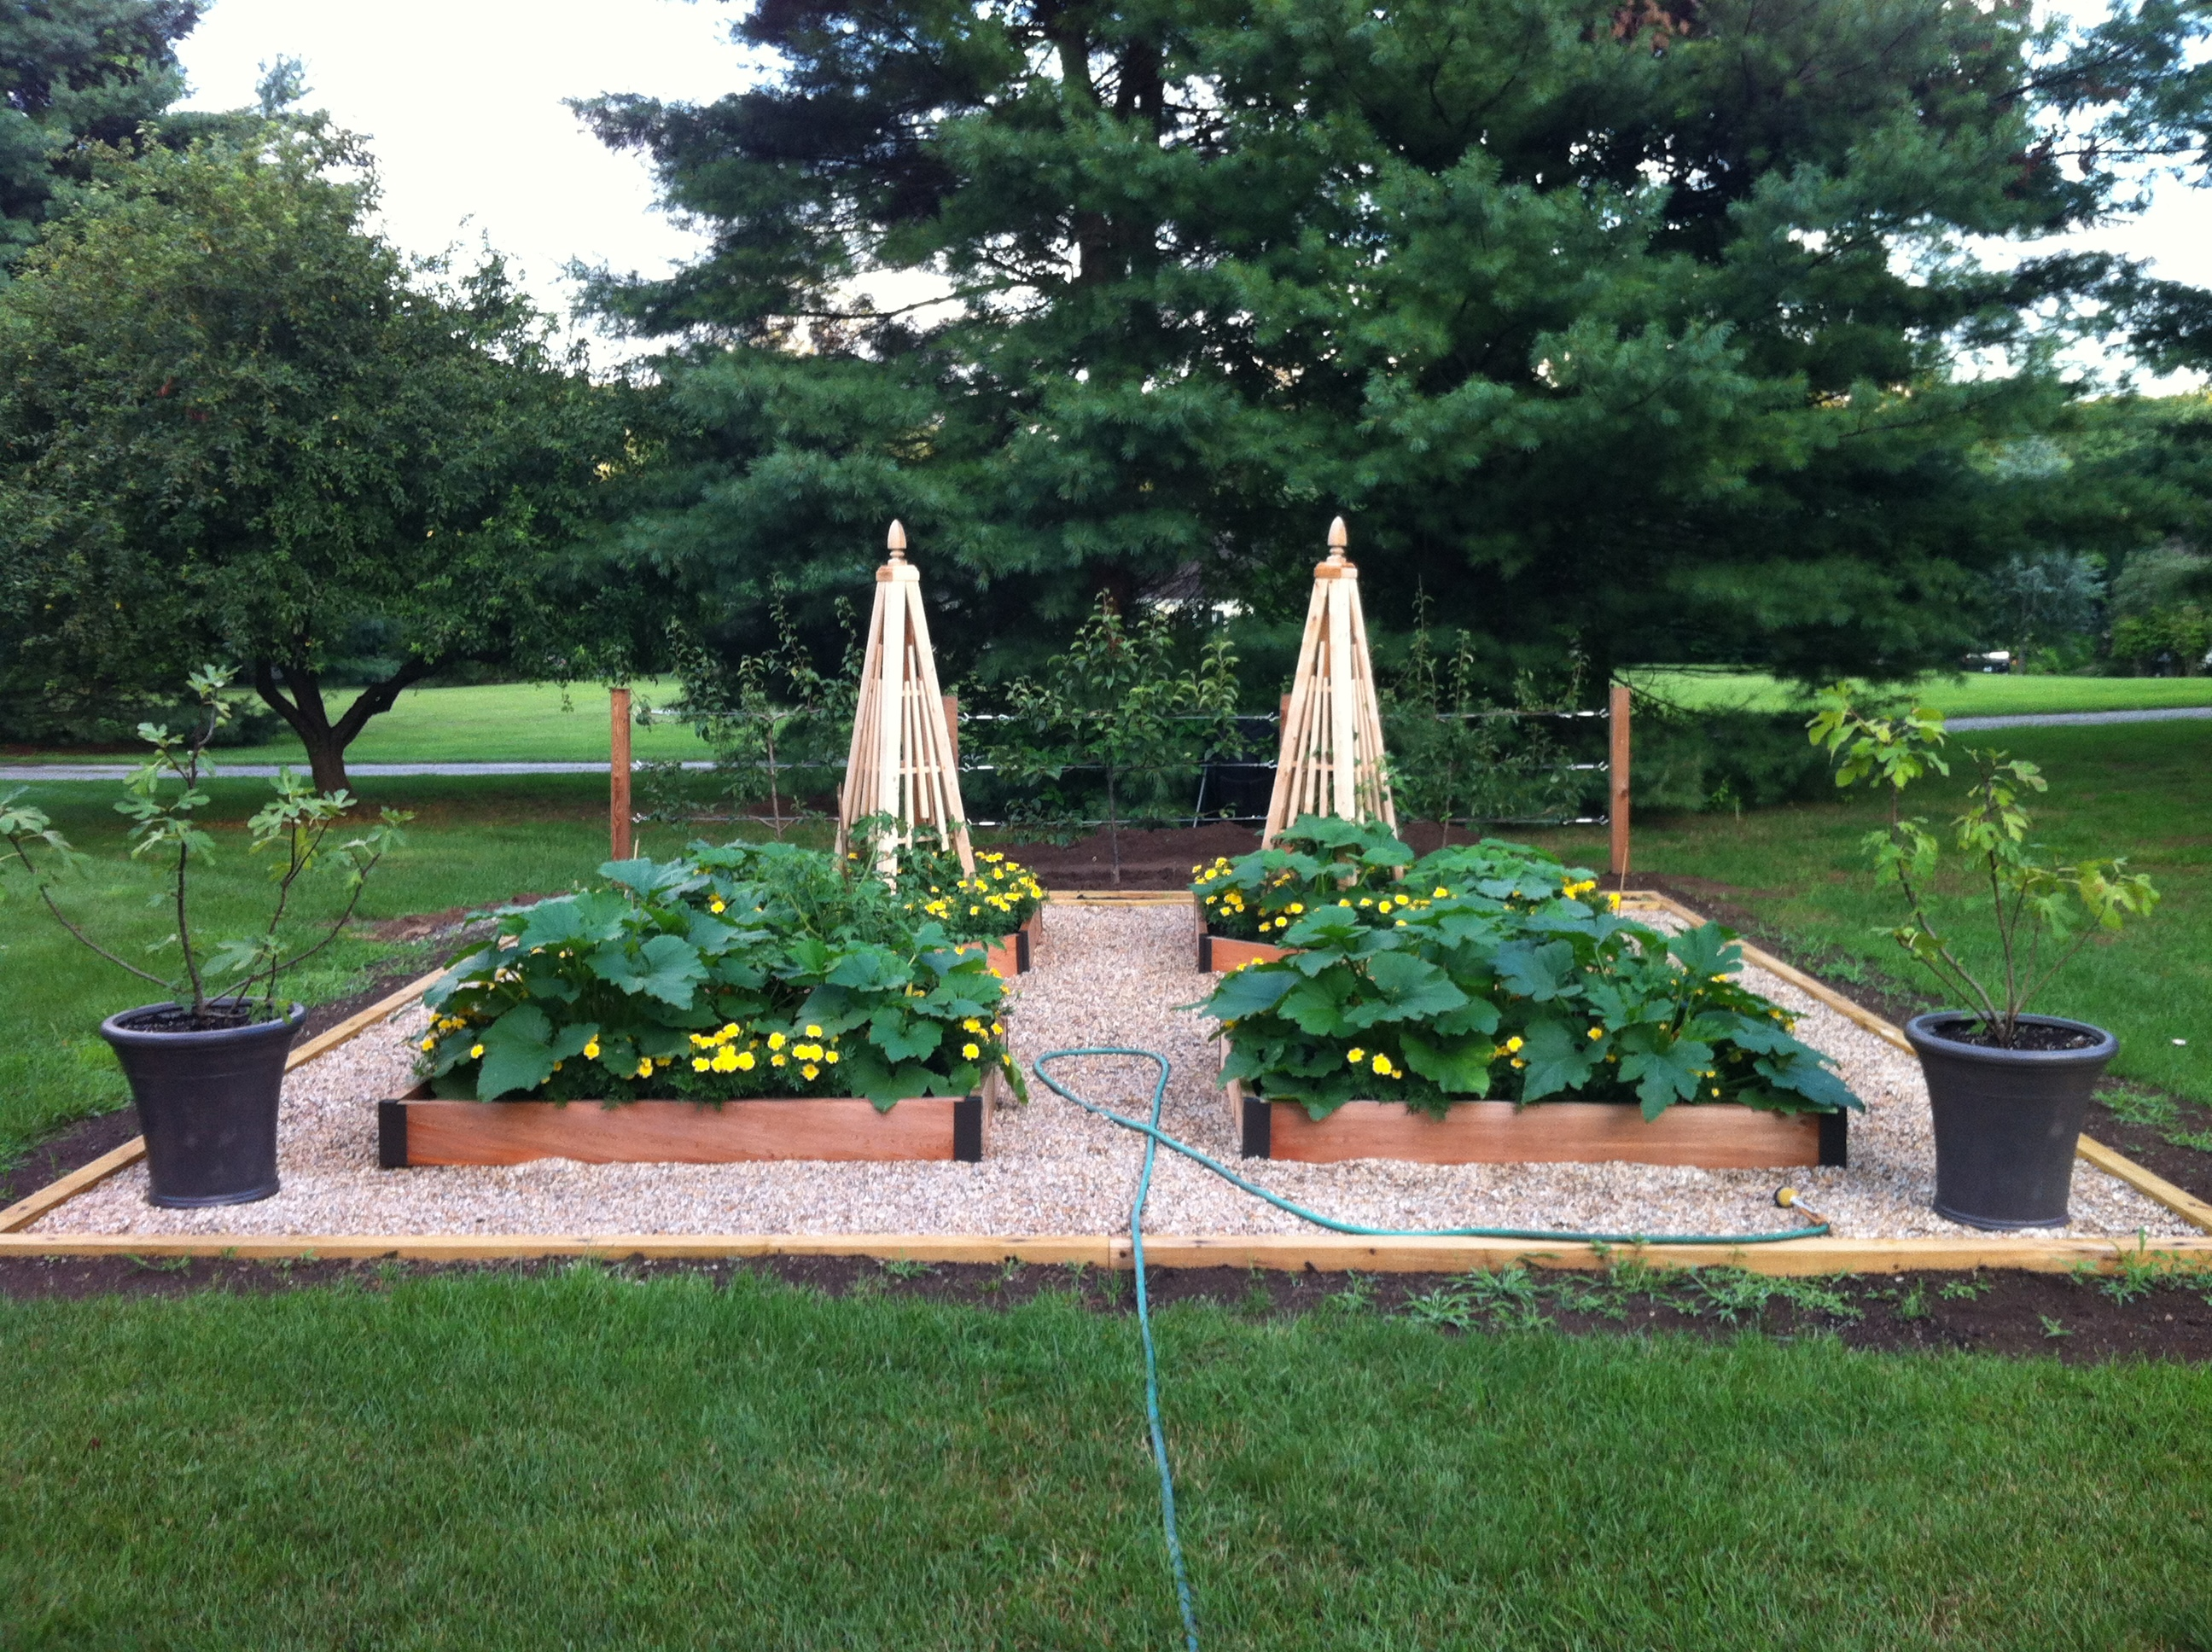 Raised Bed Vegetable Garden - Early Years